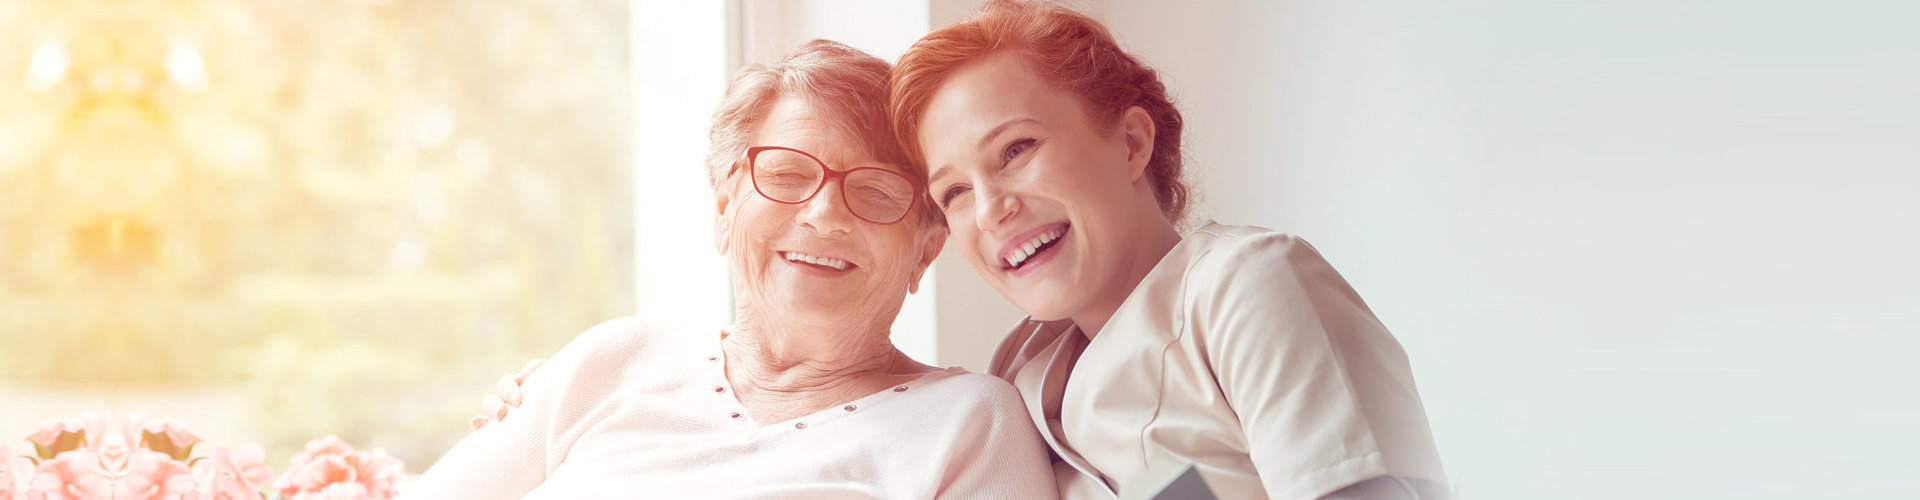 caregiver and an elderly woman smiling at the camera